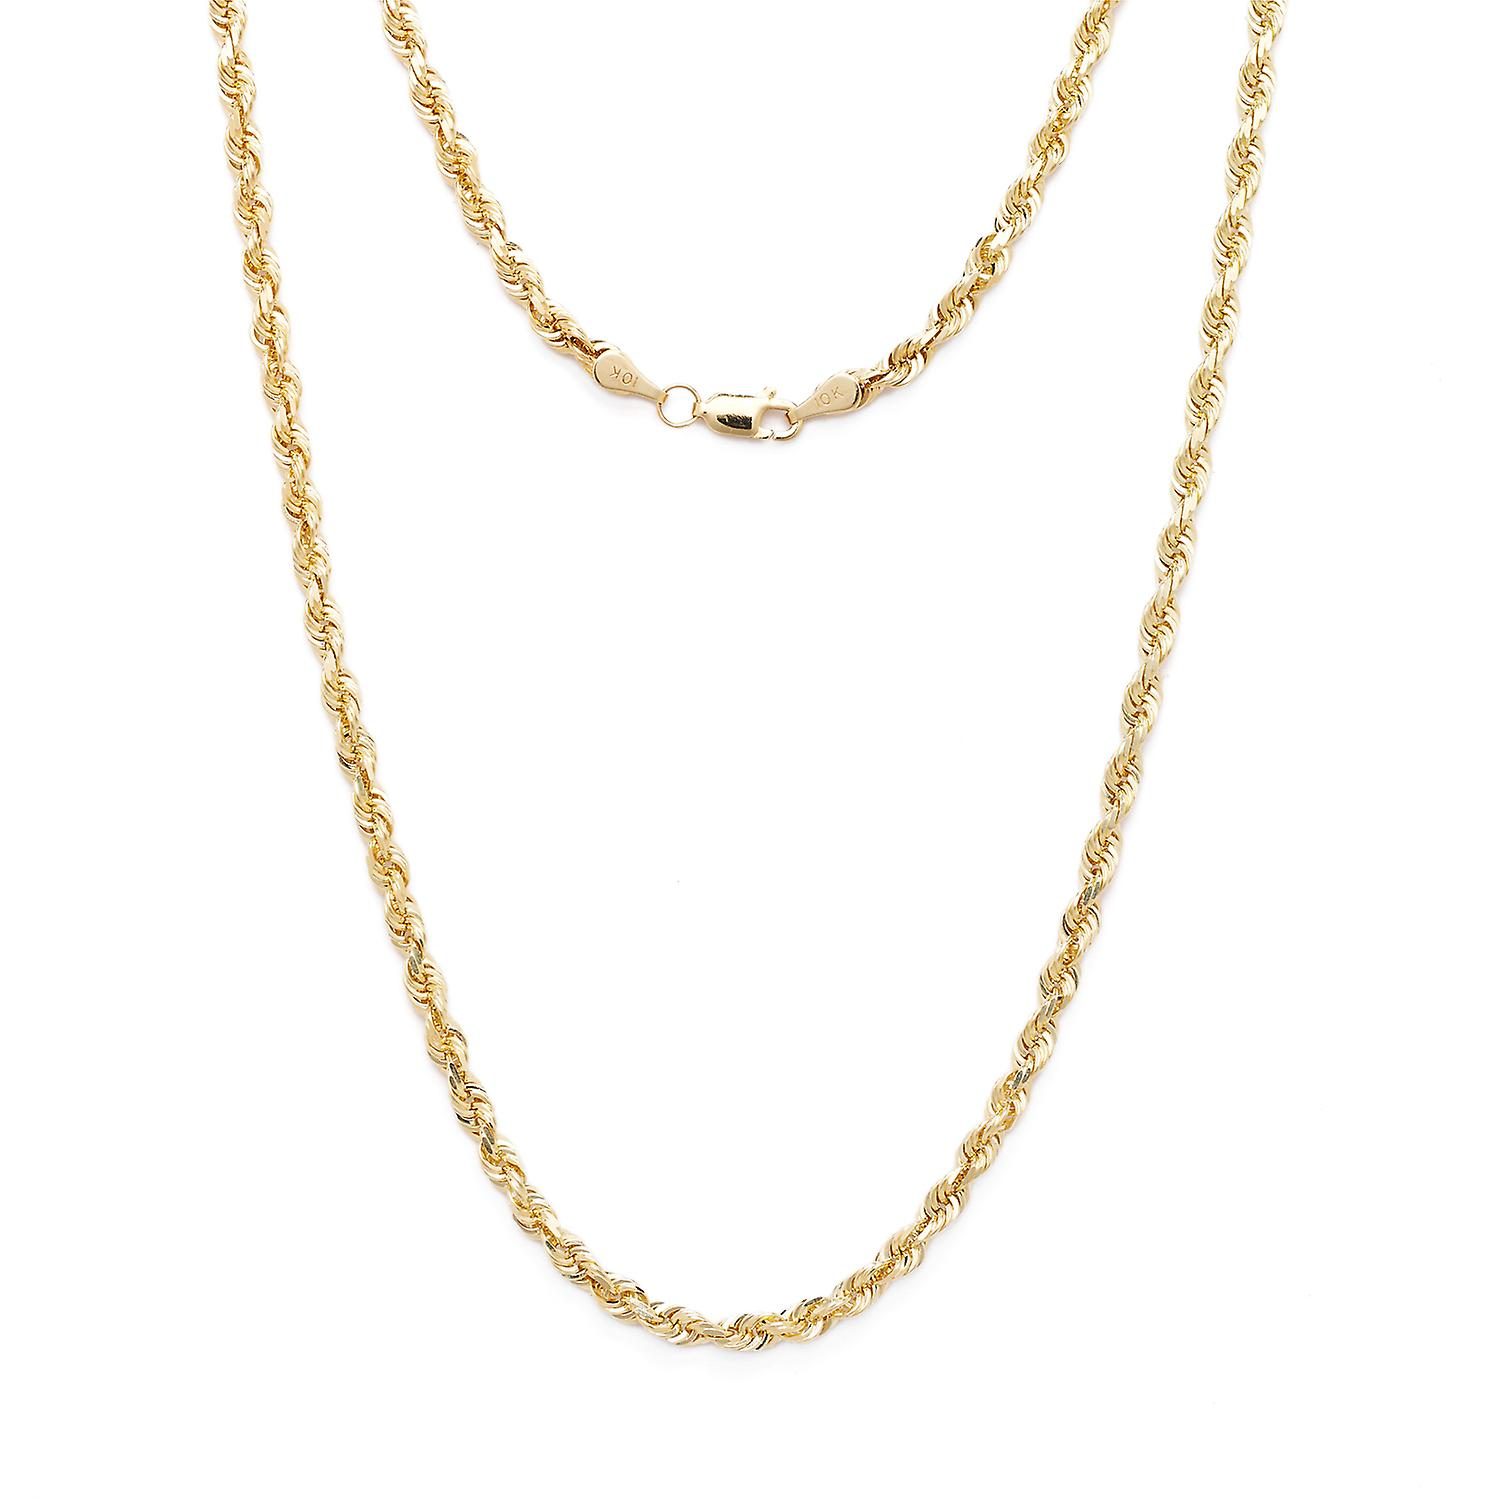 10k, diahommet solide or jaune coupe corde collier, 3mm